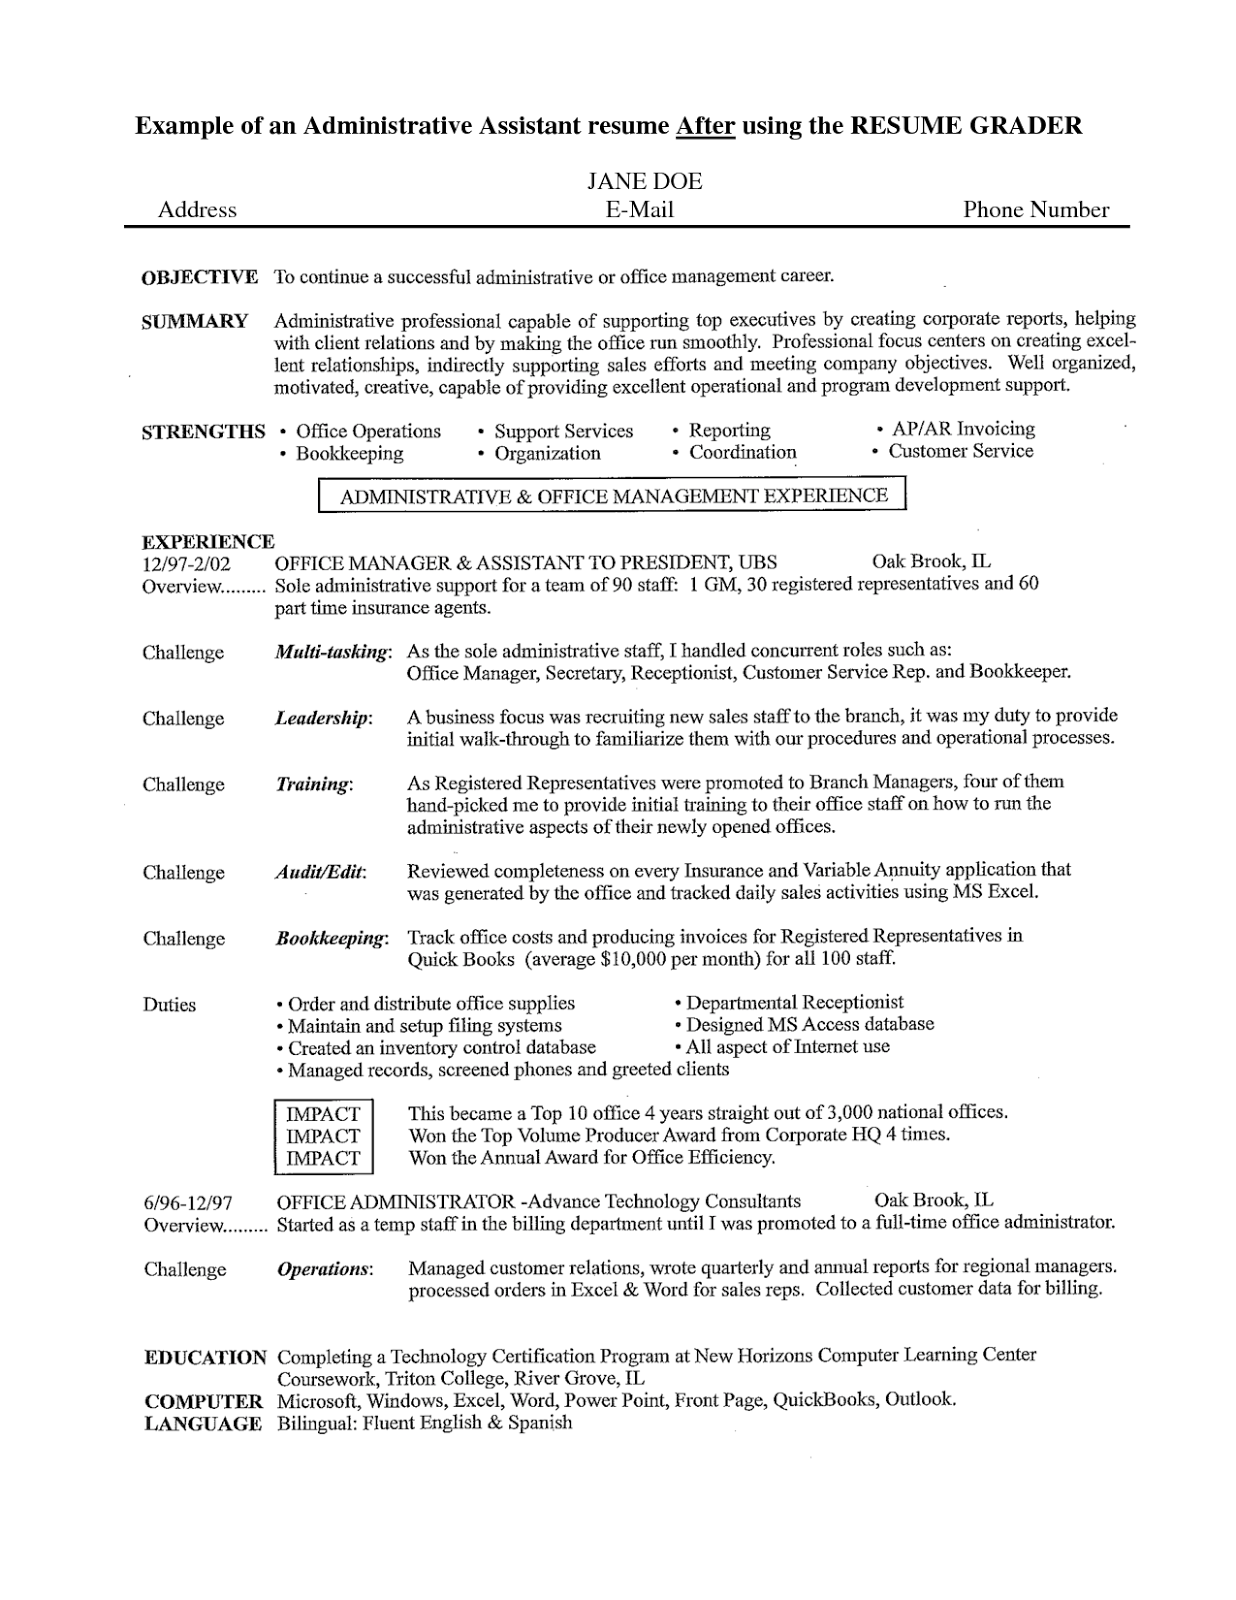 Administrative support resume objective examples